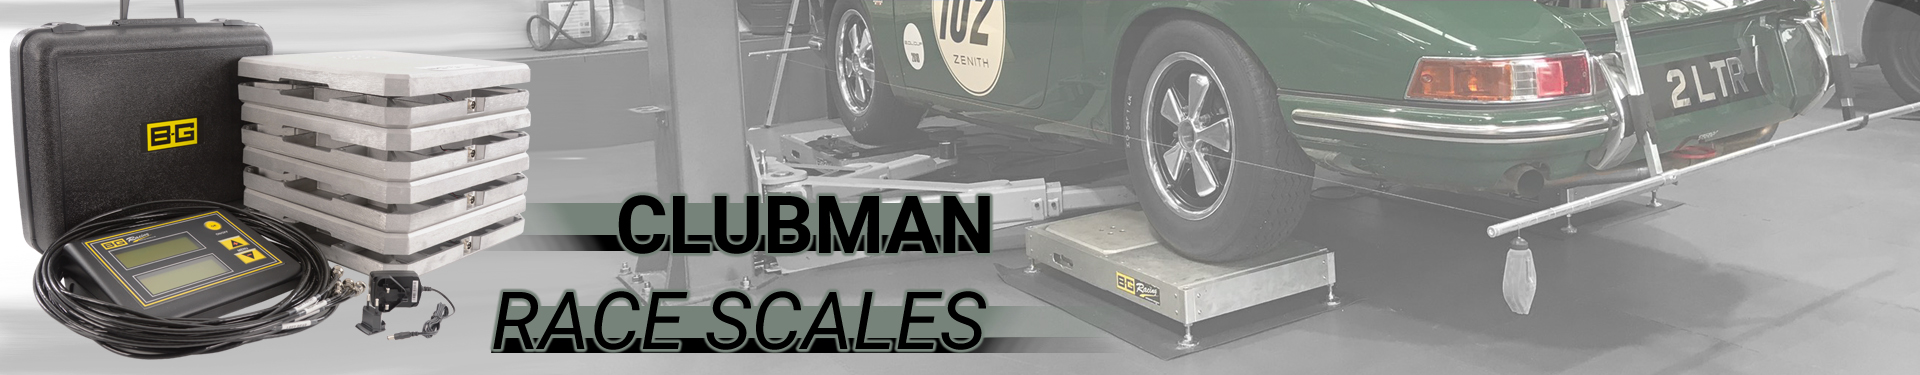 Clubman Race Scales